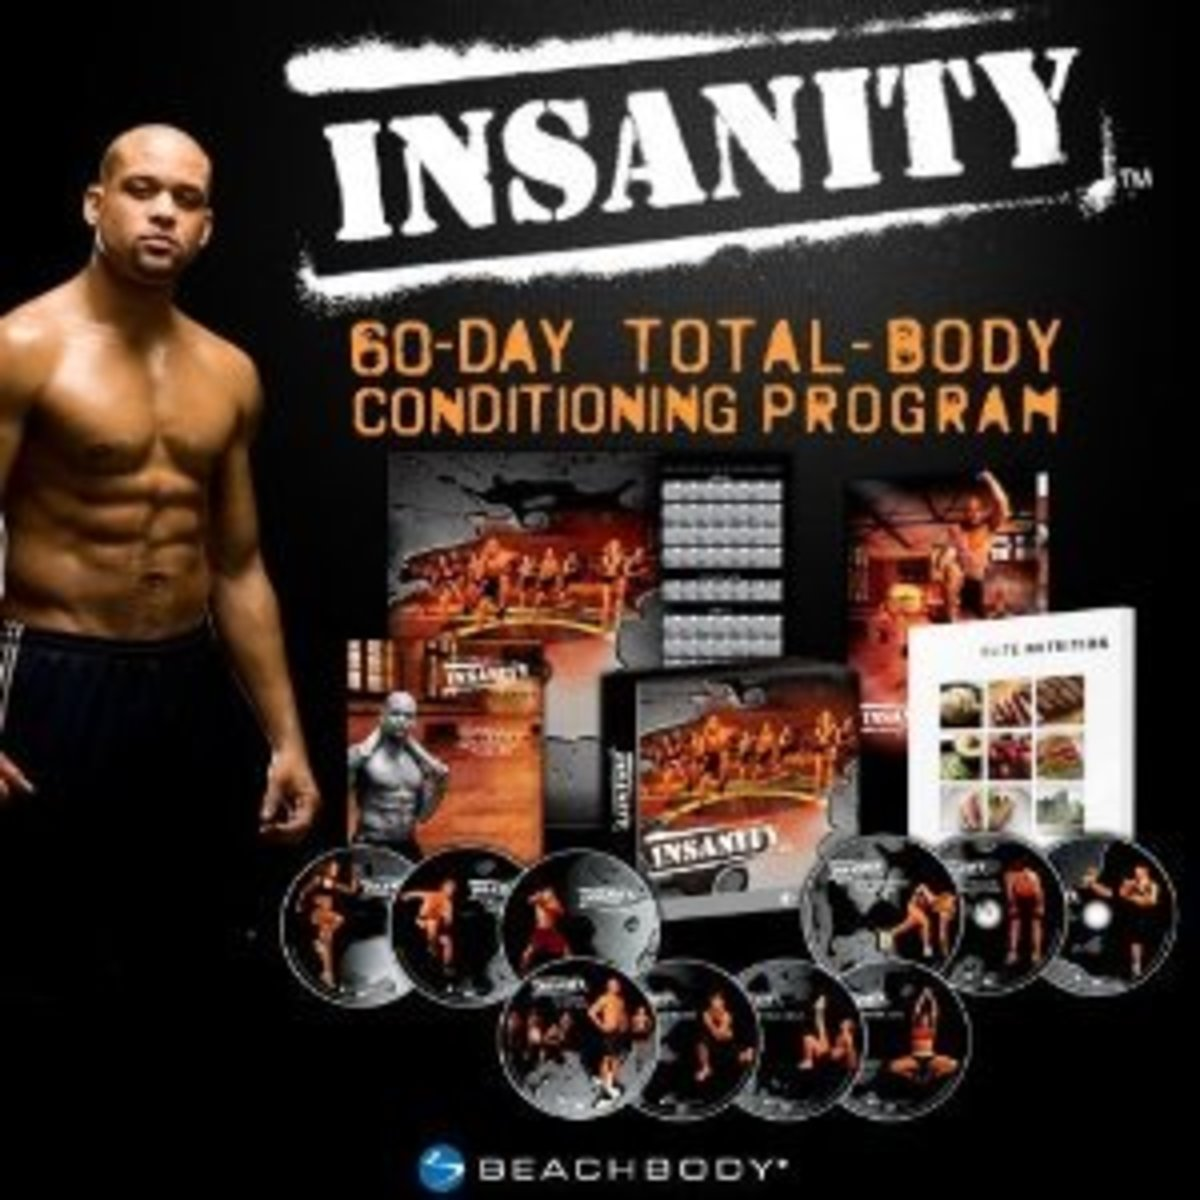 Before & After: Does the Insanity Program Work? | CalorieBee